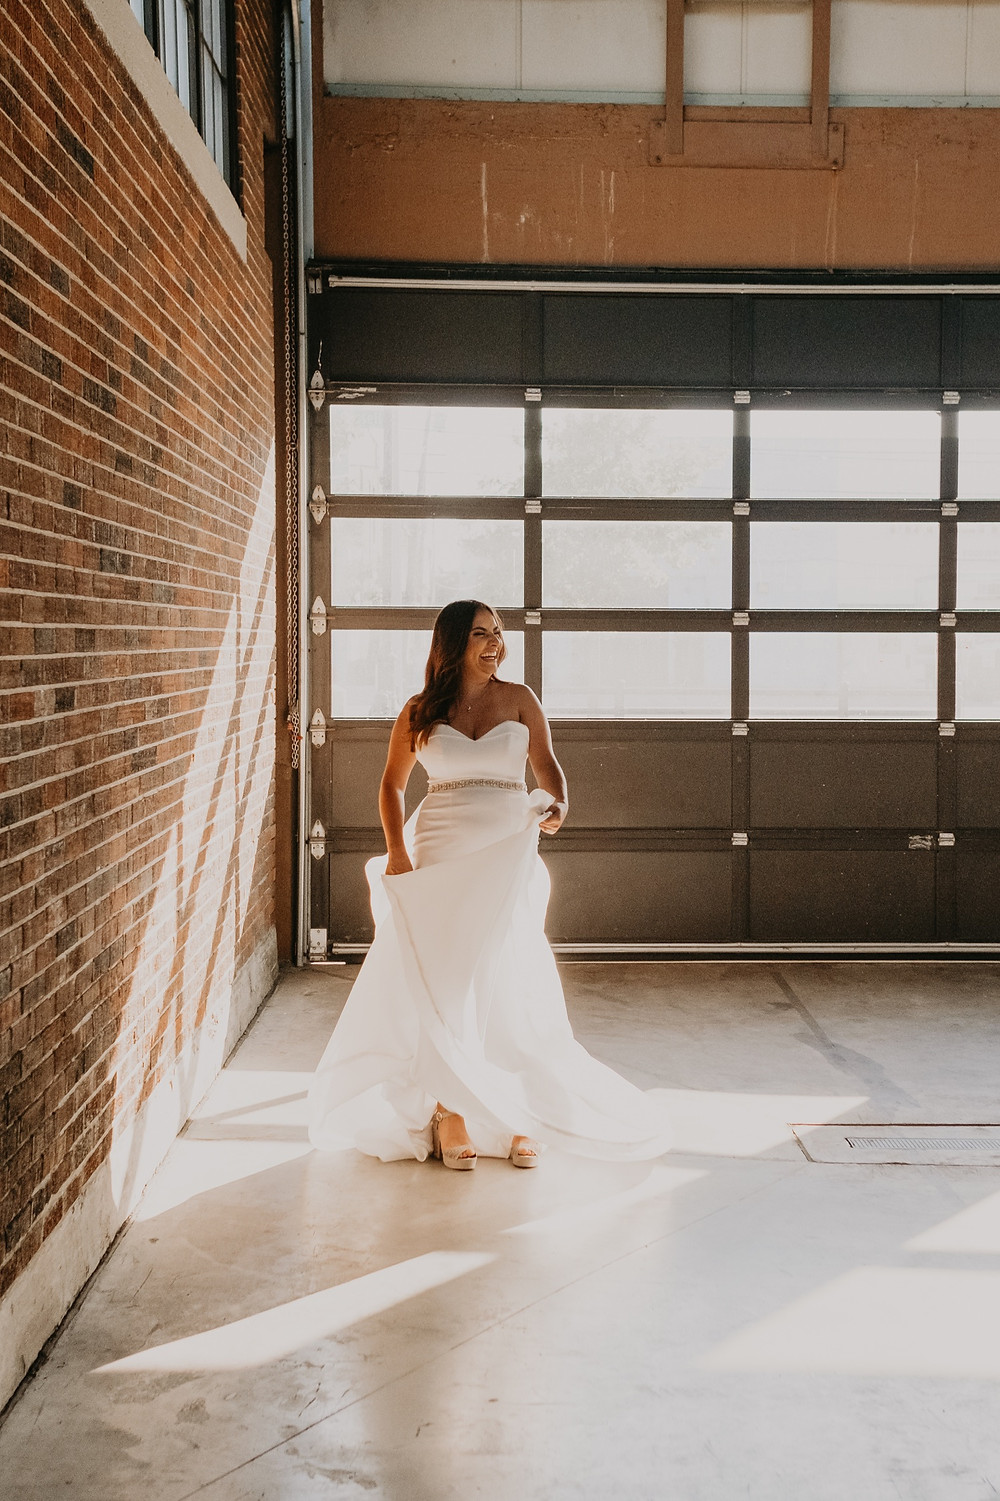 Bride in Eastern Market wearing wedding dress. Photographed by Nicole Leanne Photography.